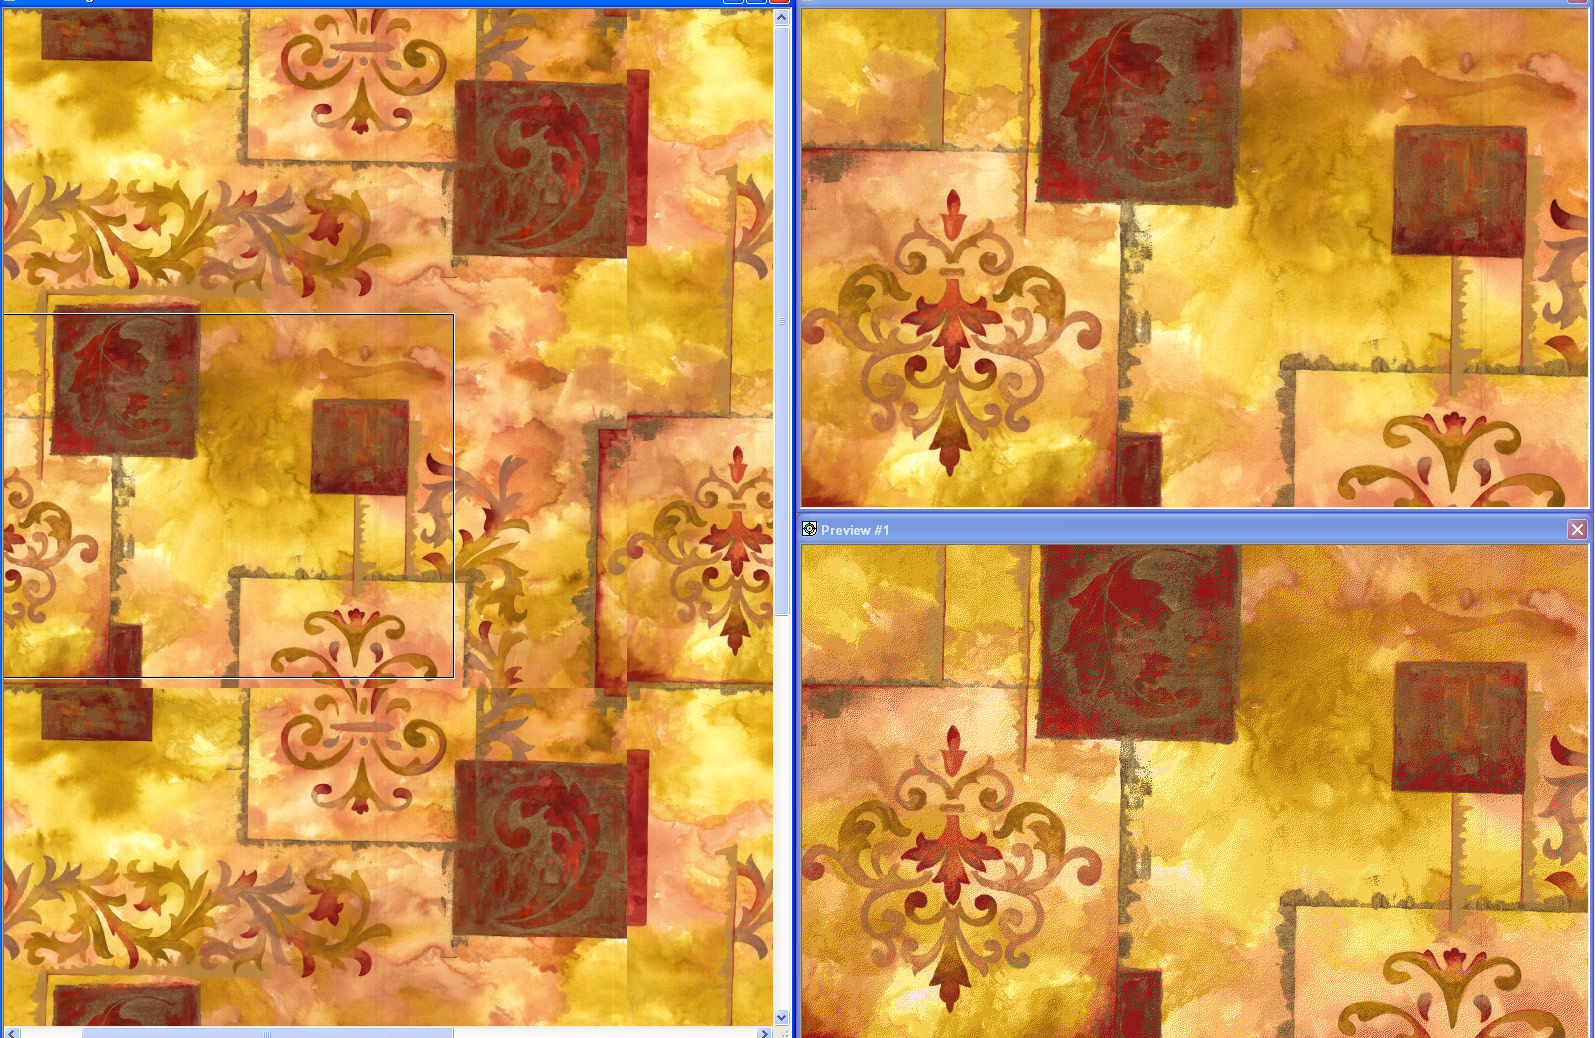 screen shot demonstrating how automatic mode reduces a golden and red embellished design